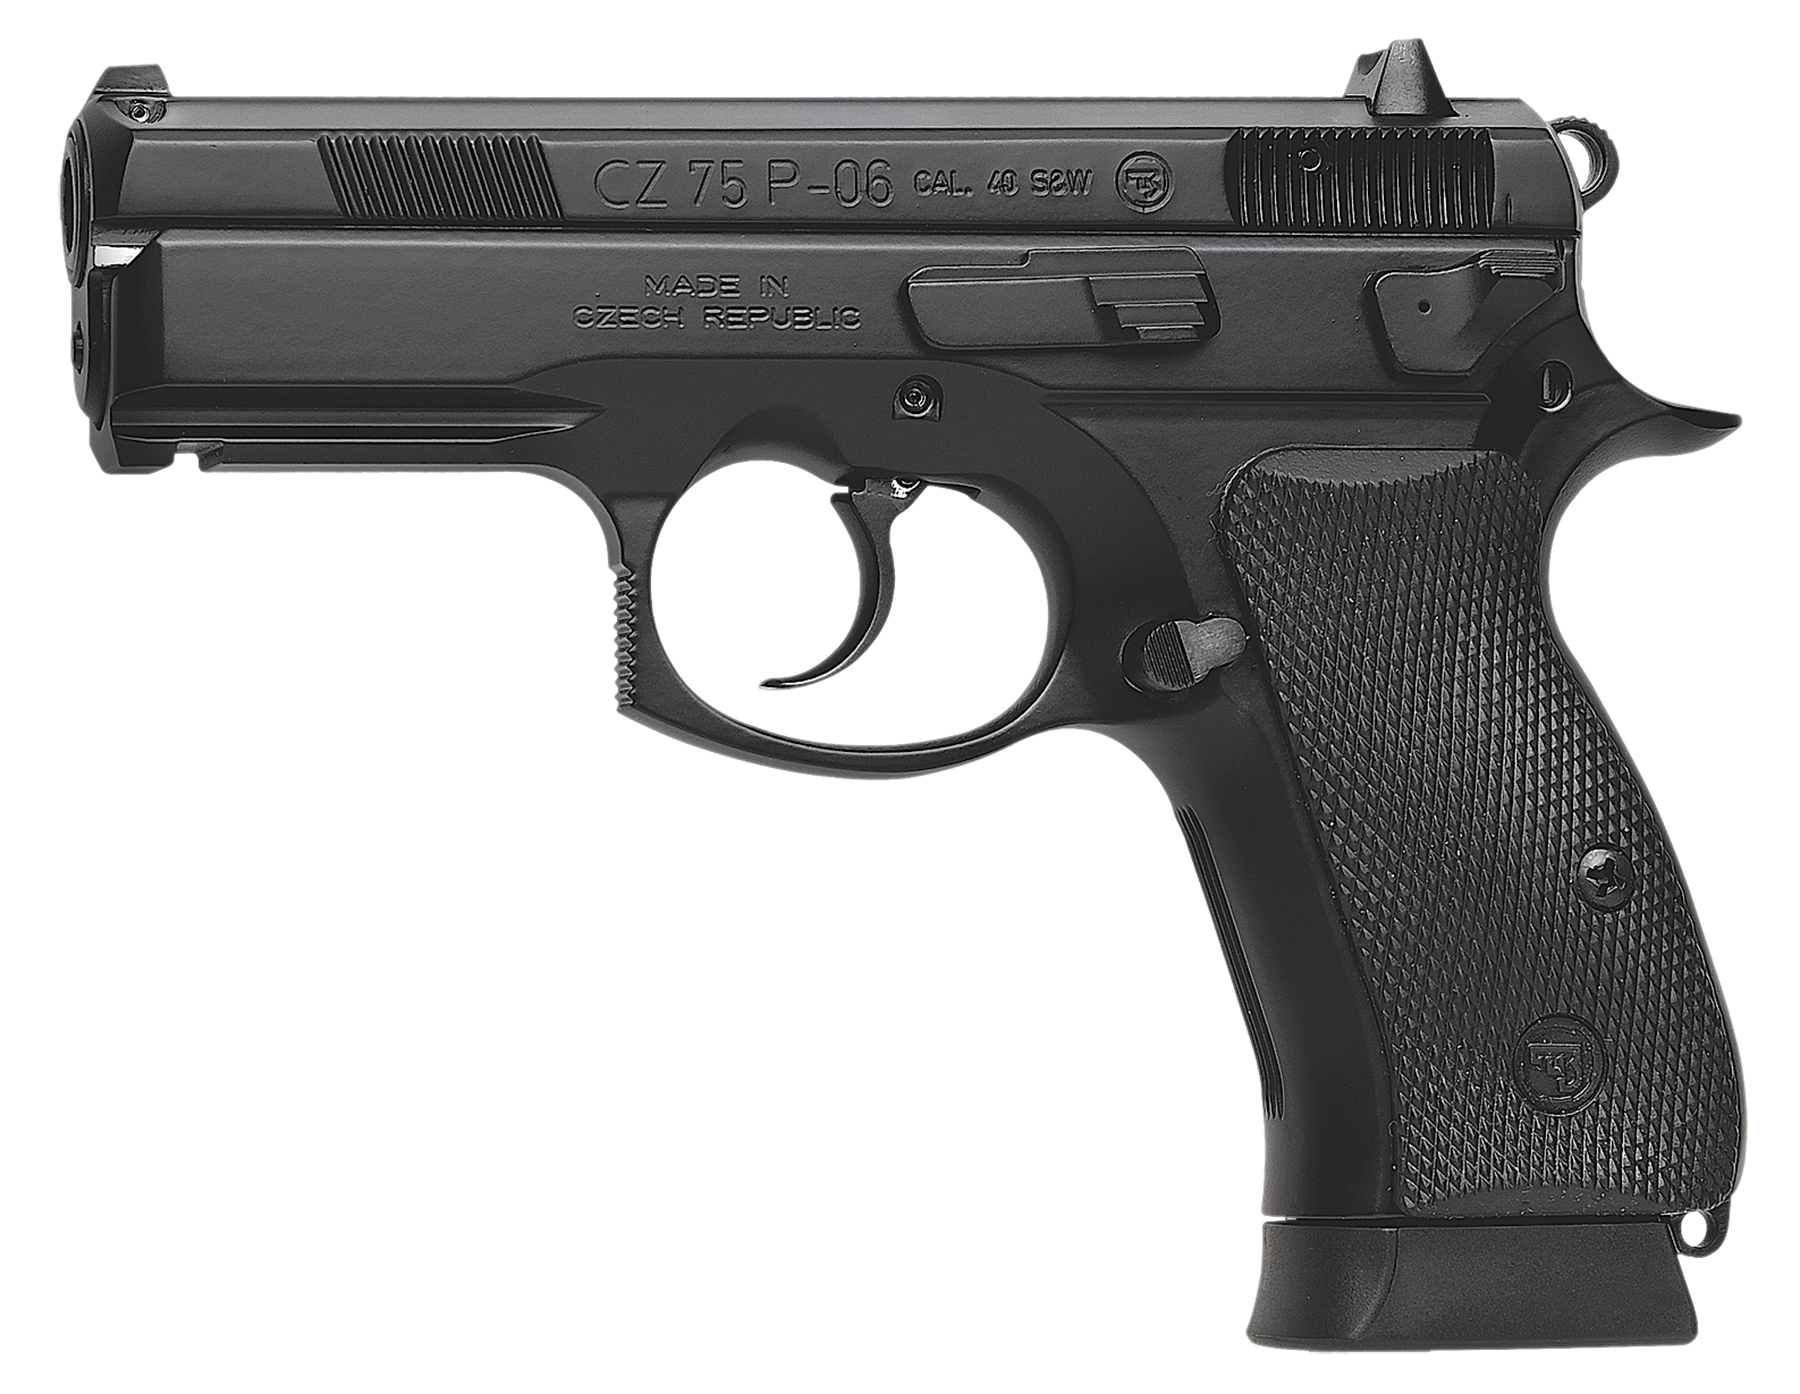 CZ 01185 CZ-P P-06 40 Smith & Wesson 3.9